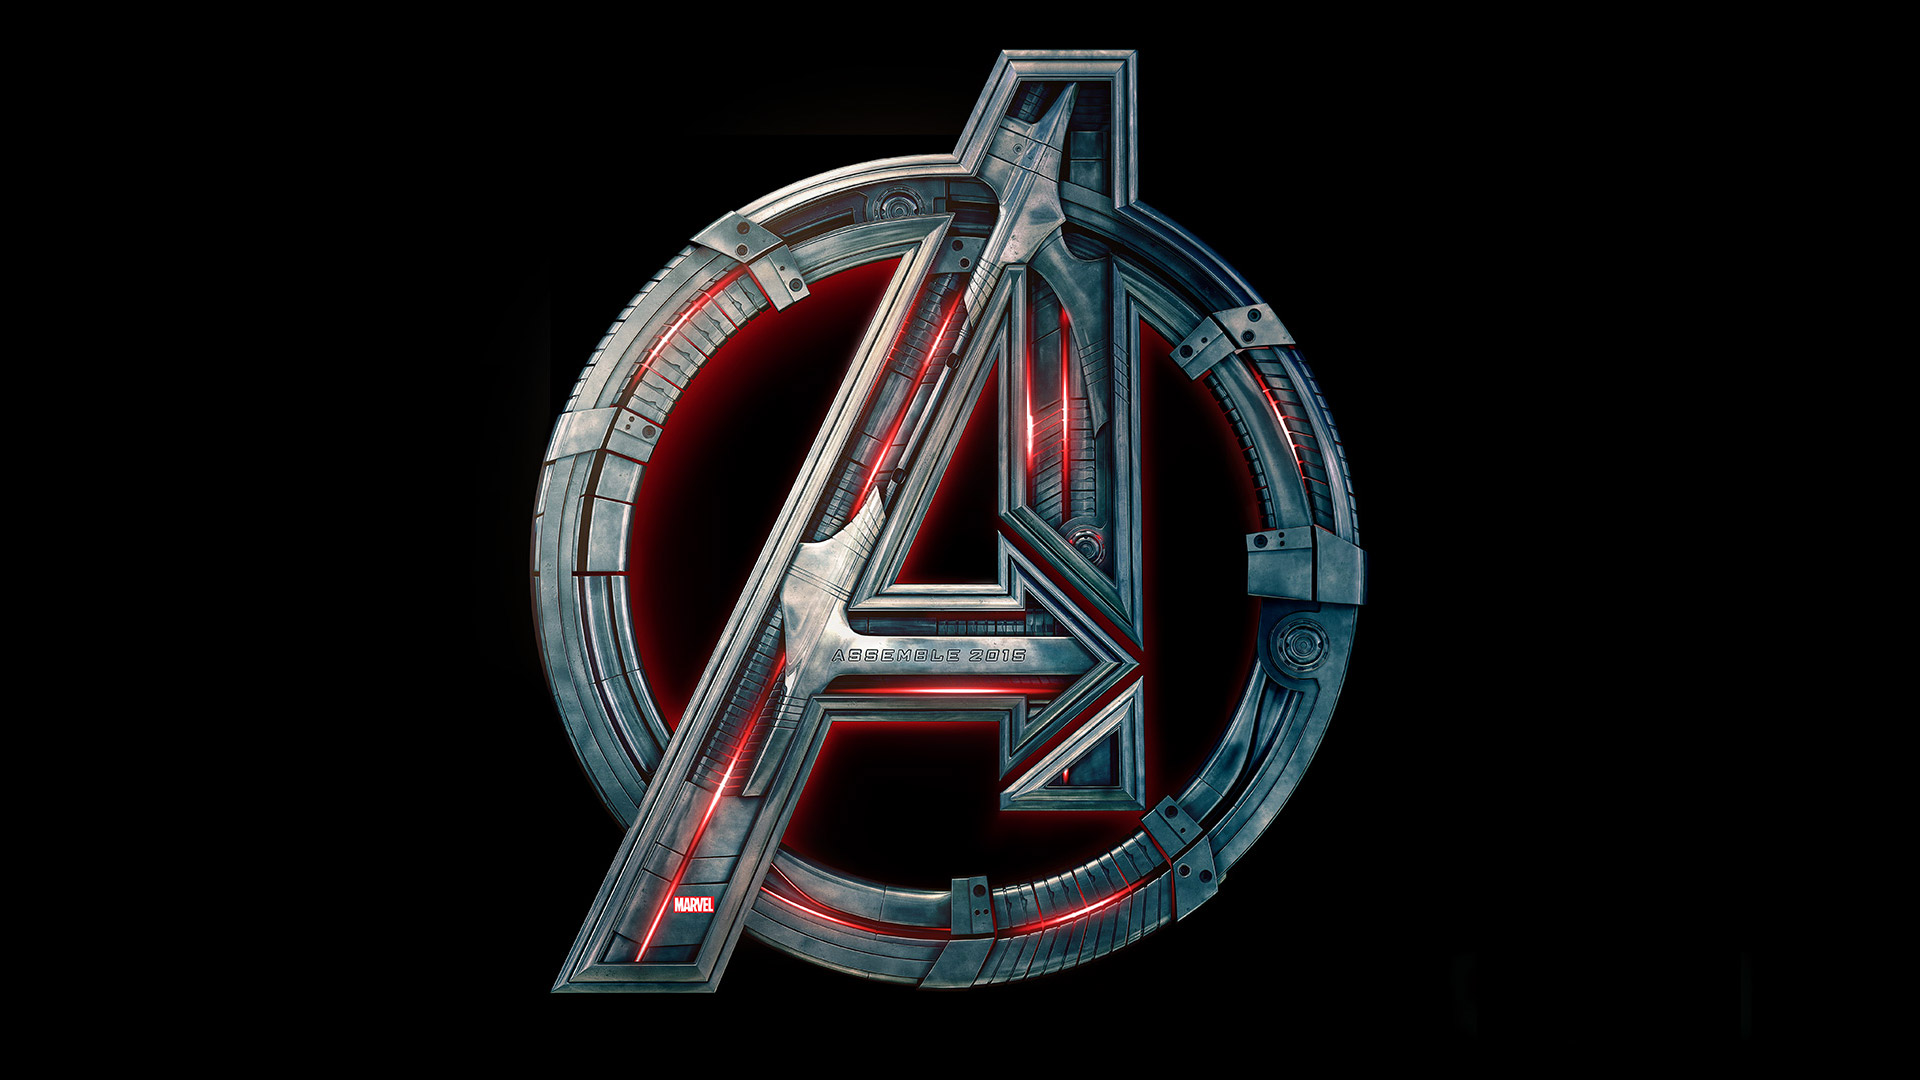 Hd Wallpapers Of Girls And Cars Logo Avengers Wallpapers Pixelstalk Net